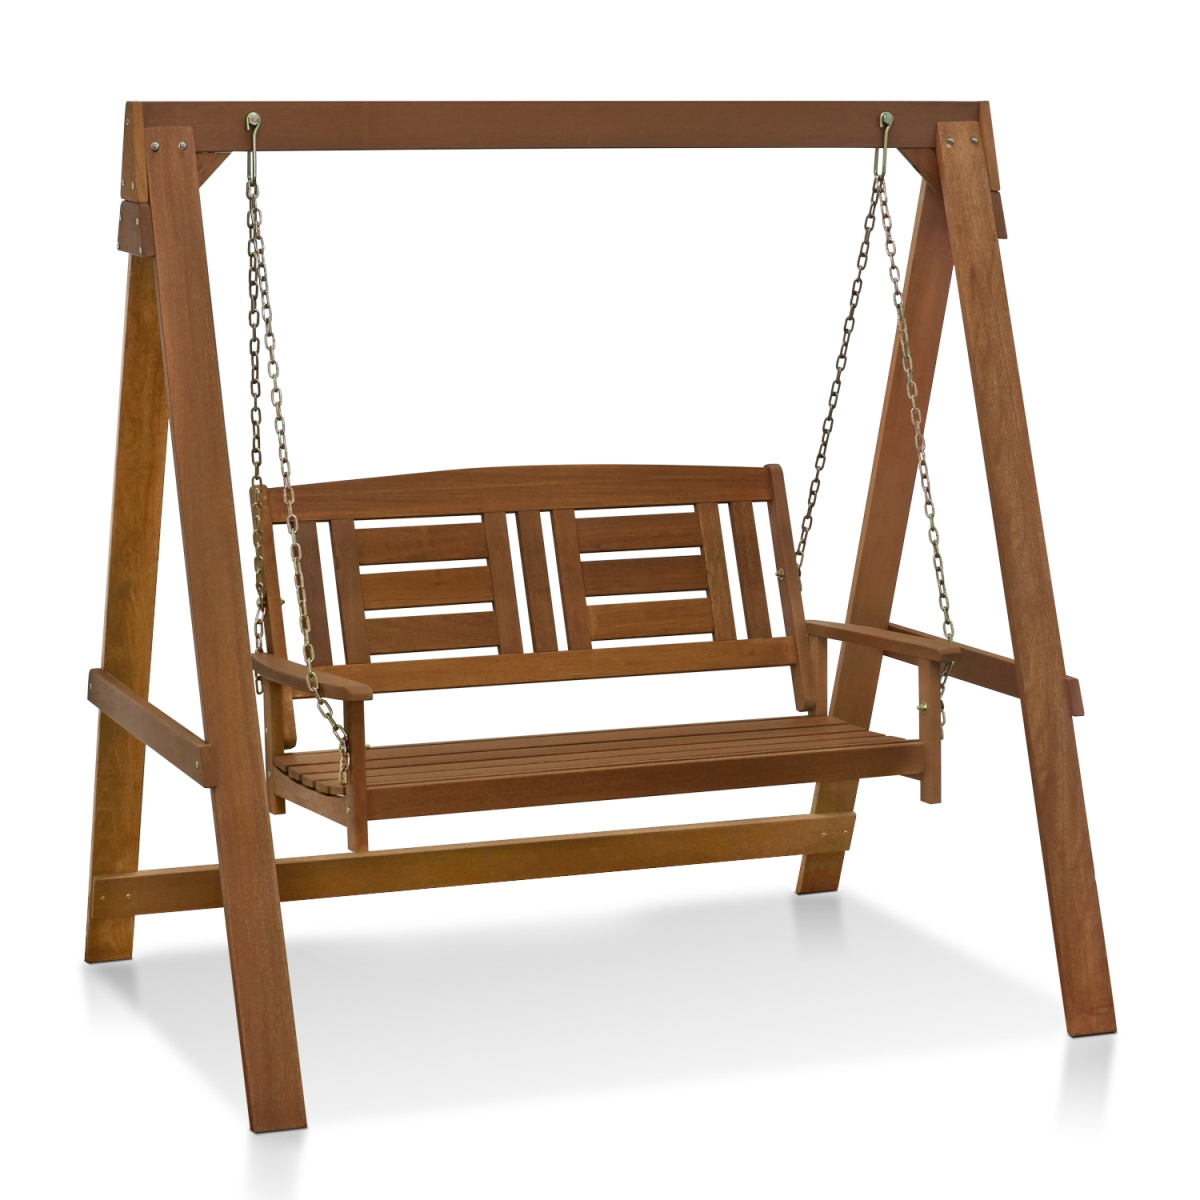 3 Person Light Teak Oil Wood Outdoor Swings In Most Popular Furinno Fg16409 Tioman Hardwood Hanging Porch Swing With Stand In Teak Oil (Gallery 1 of 25)